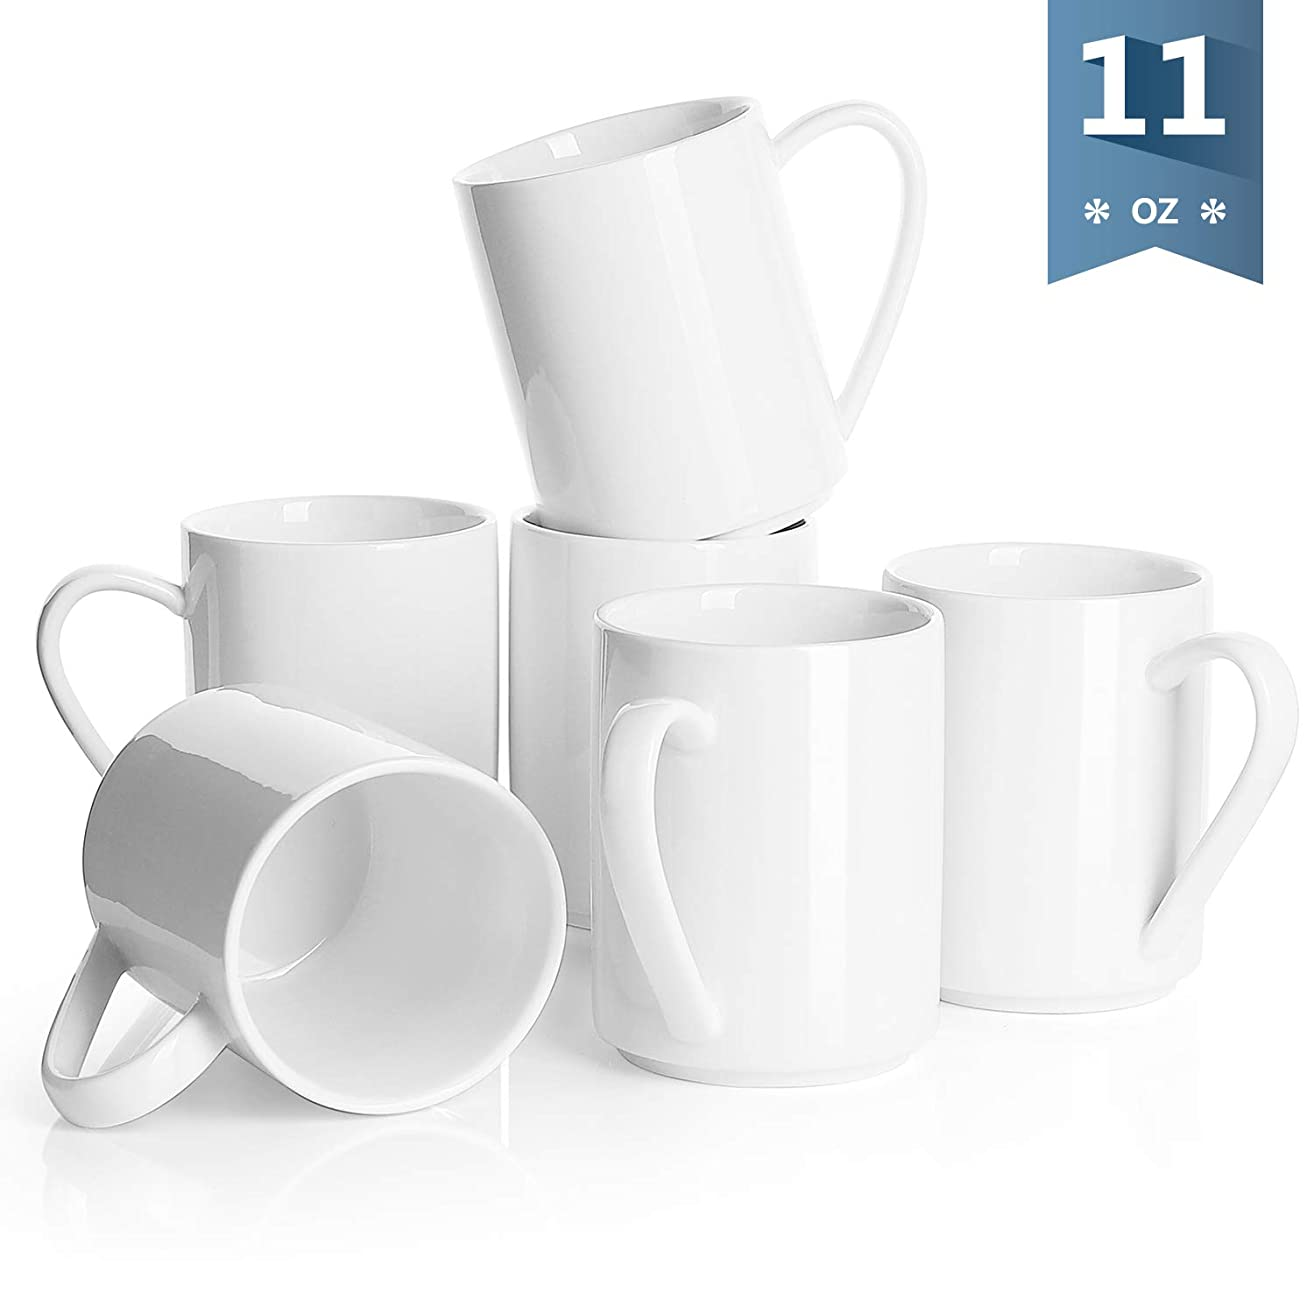 Sweese 6212 Porcelain Coffee Mug Set - 11 Ounce for Coffee, Tea, Cocoa and Mulled Drinks - Set of 6, White